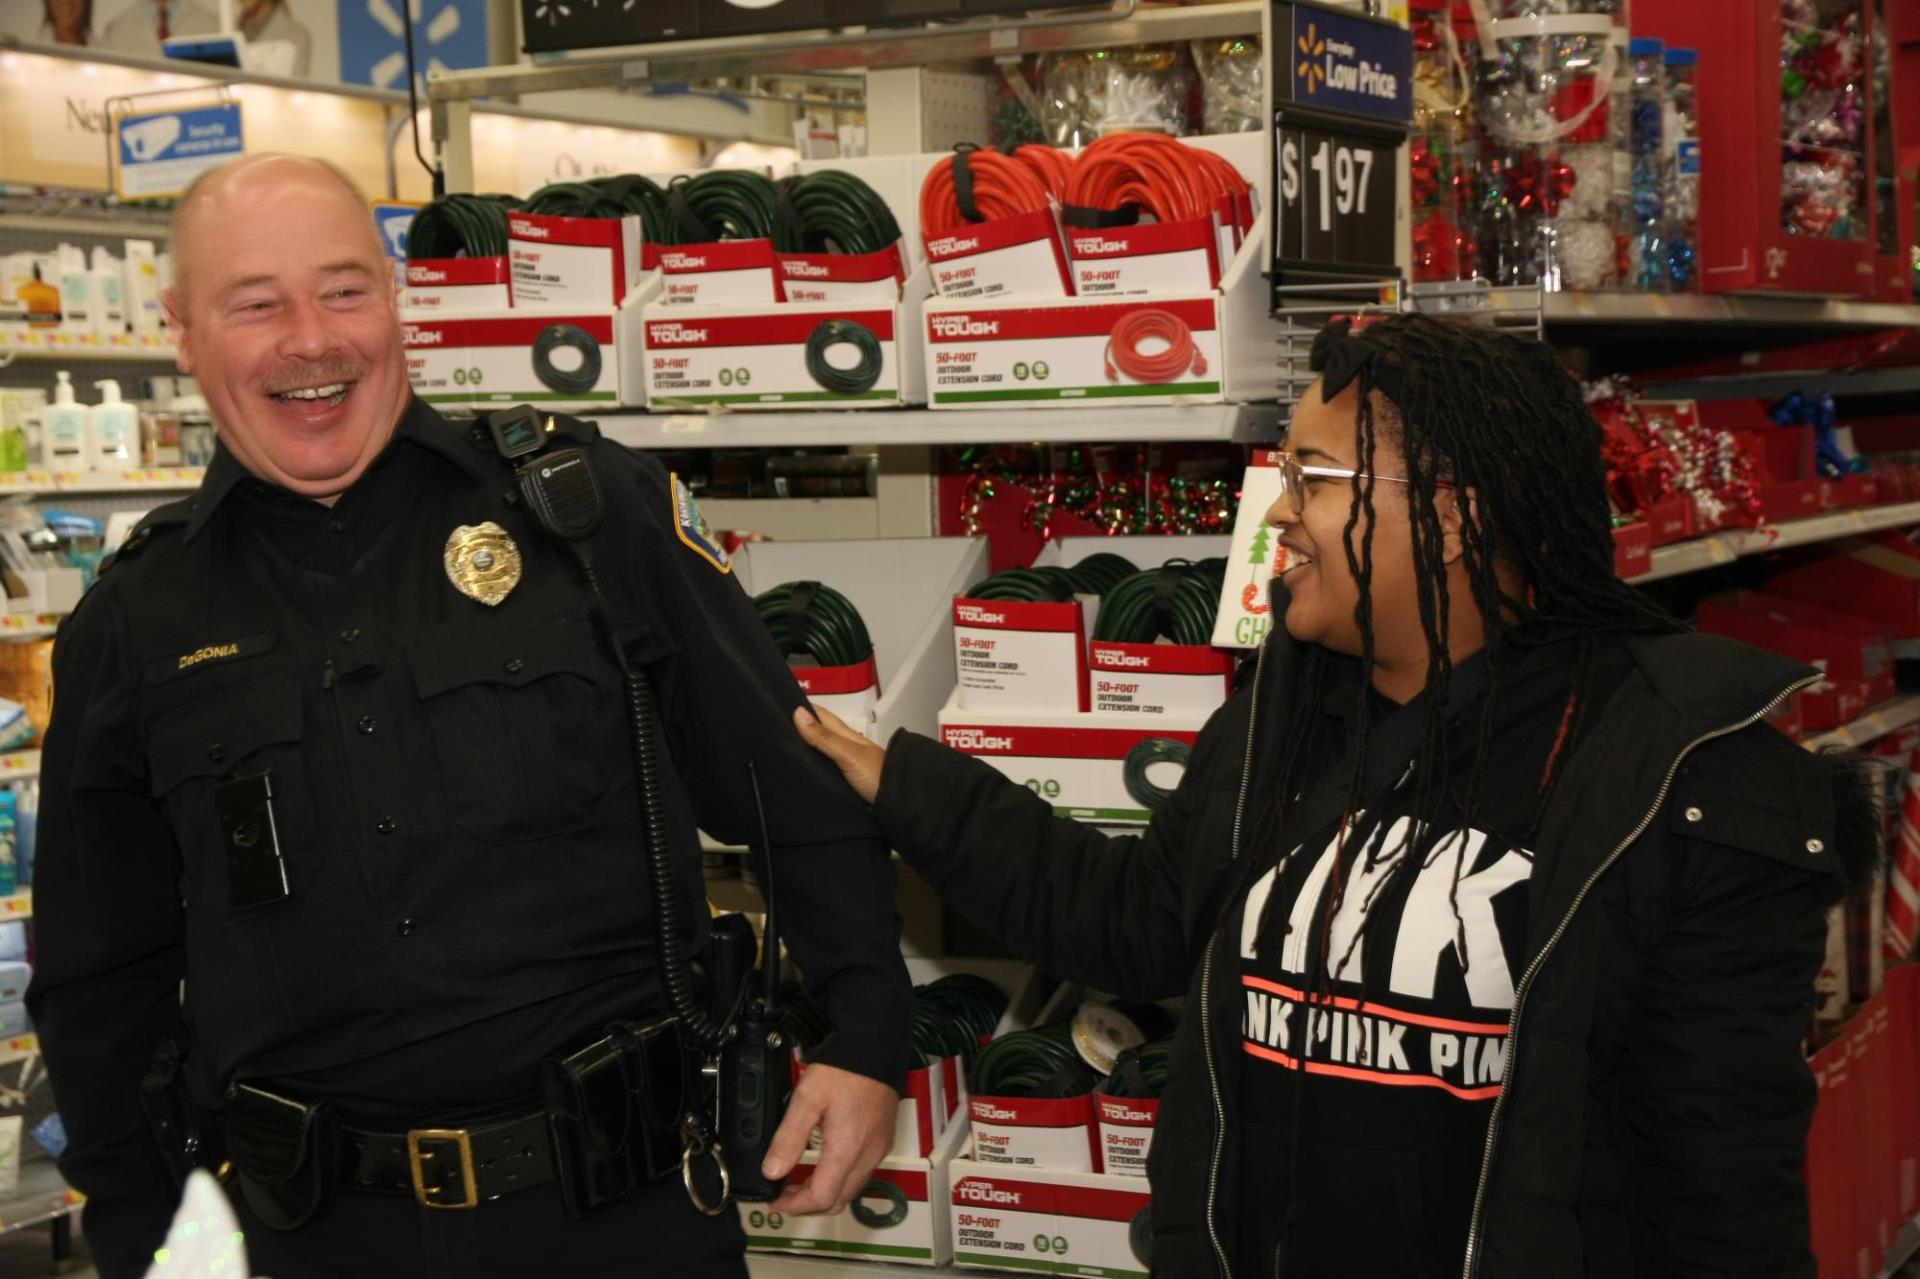 Police Officer at Shop with a Cop